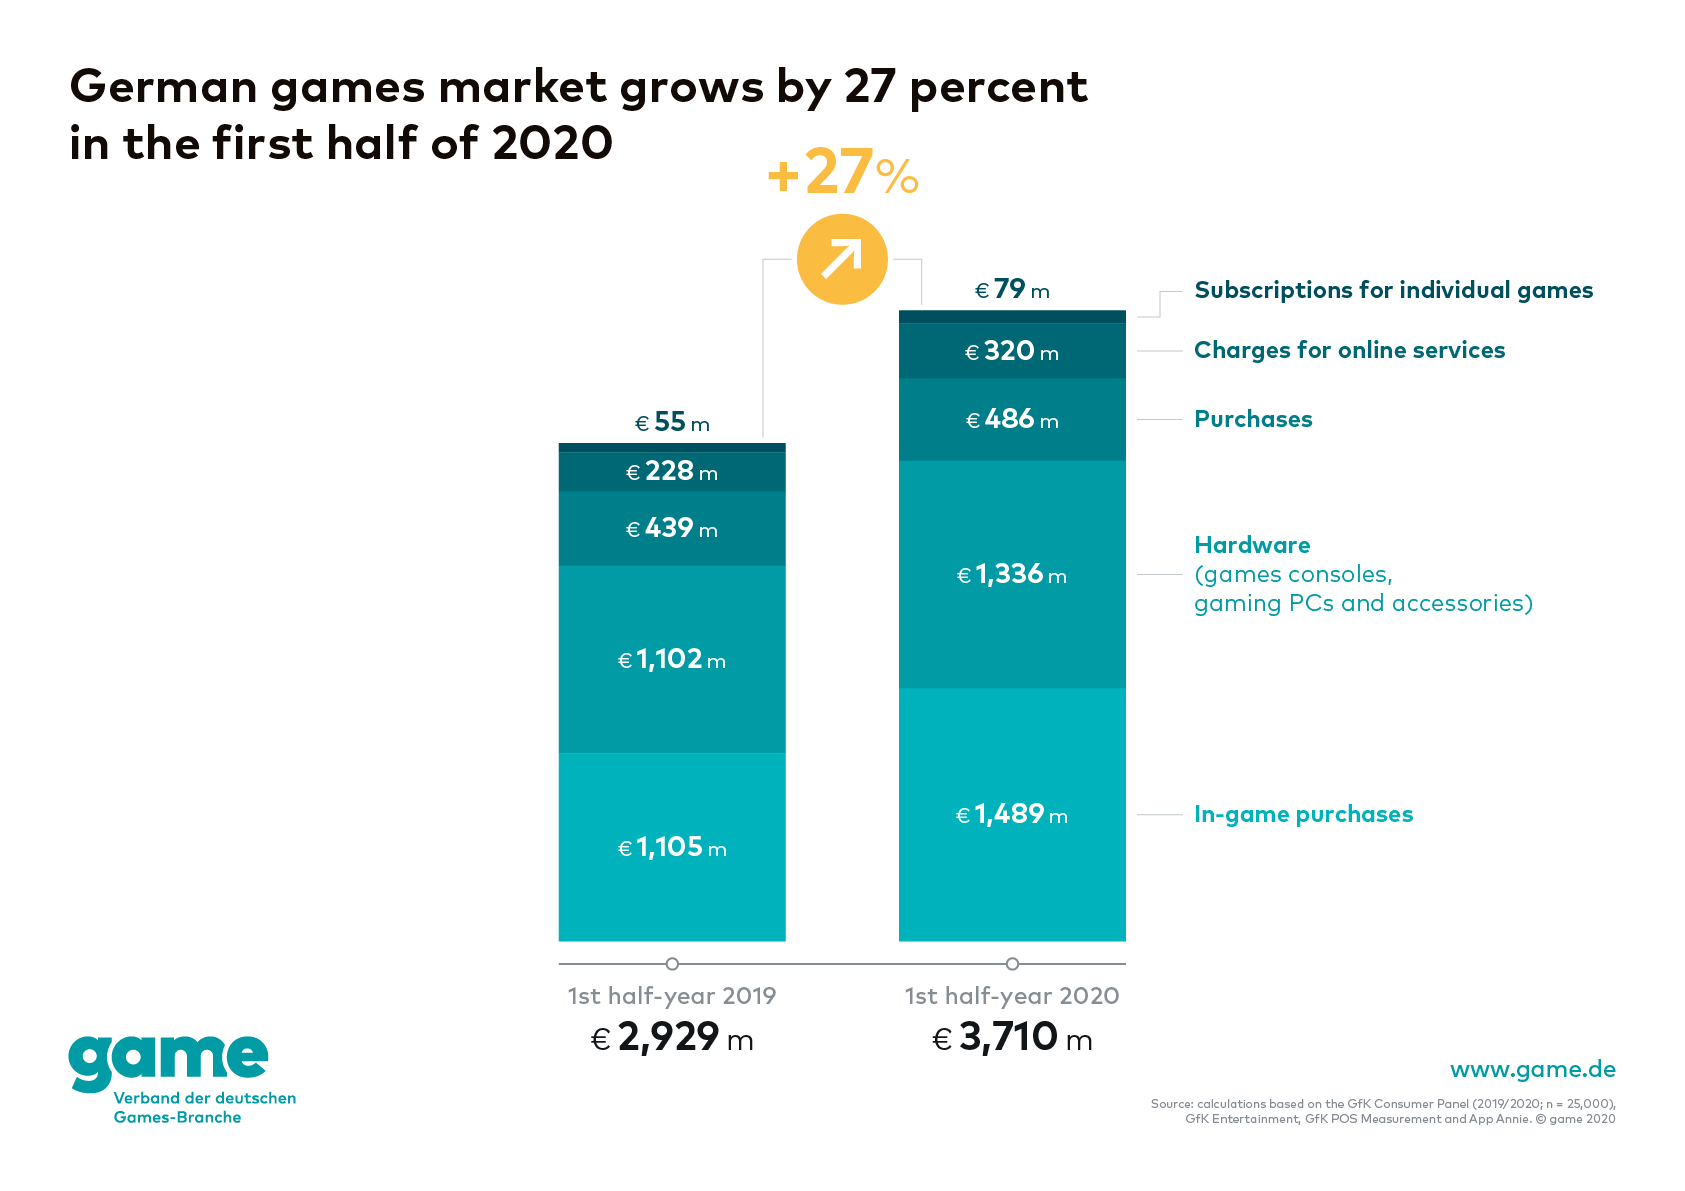 game-graphic_german-games-market-1st-half-year-2020